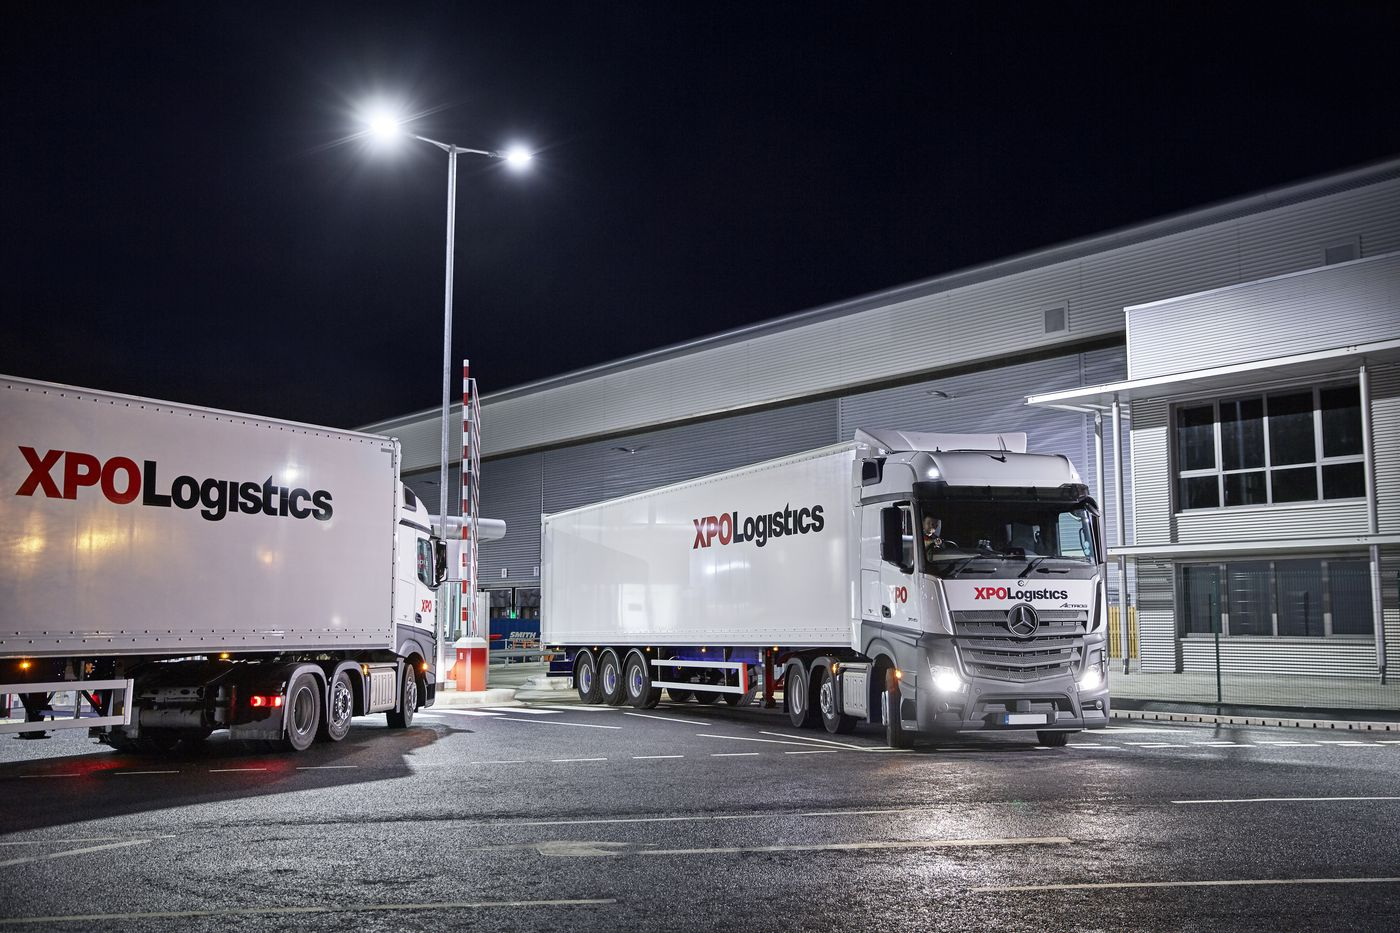 XPO Logistics tops Fortune 500 Transportation and Logistics Ranking for 5th year in a row